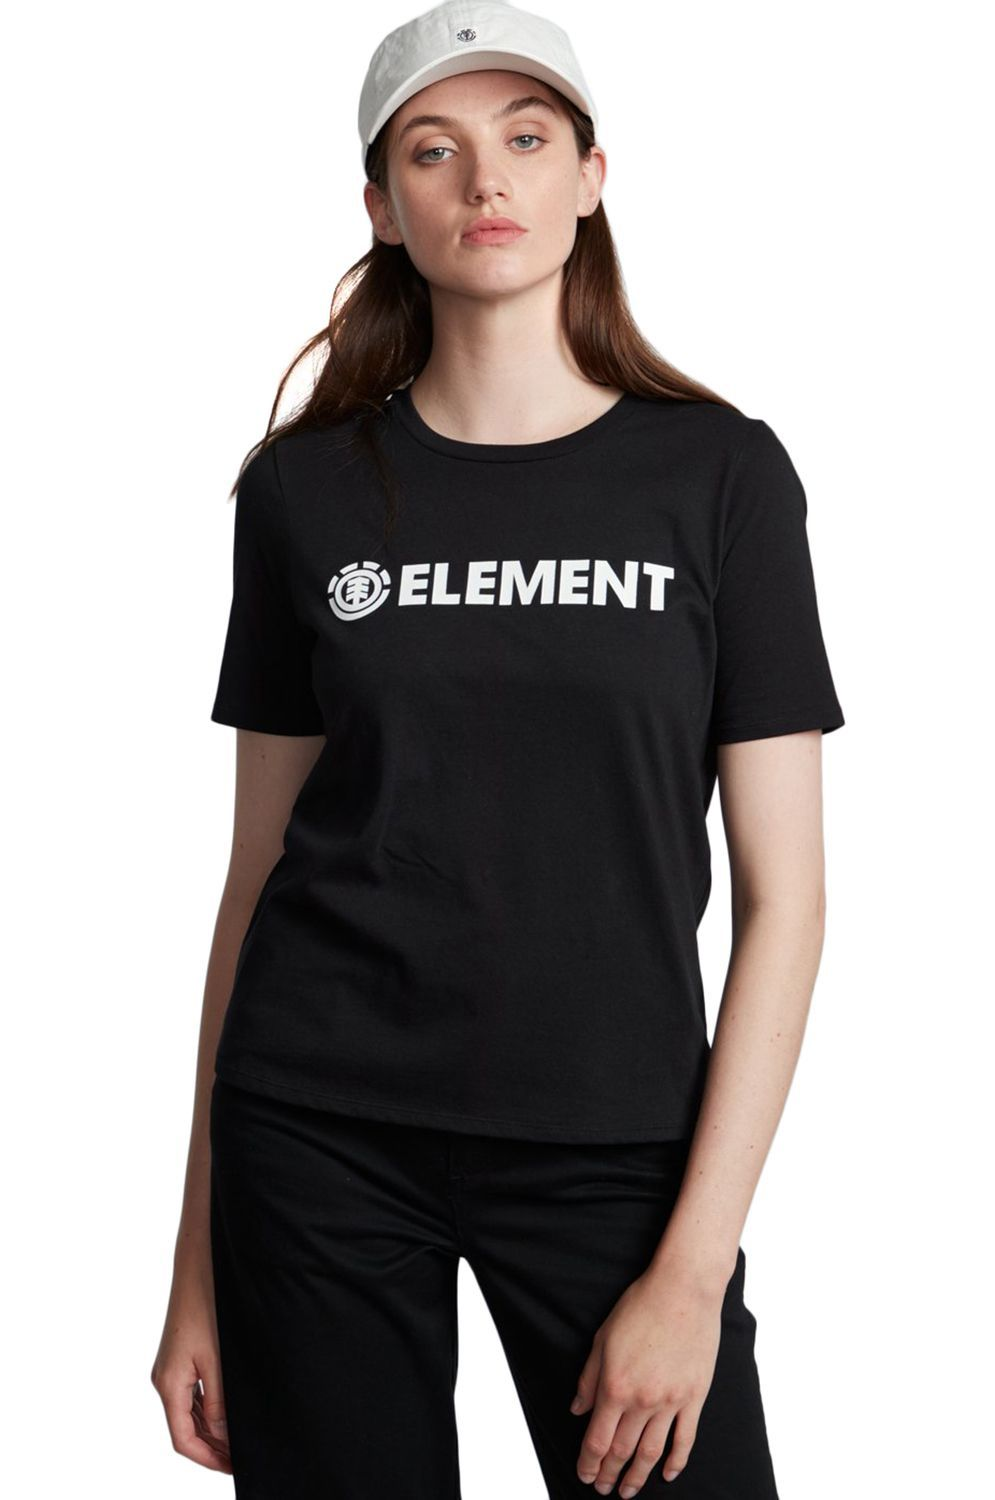 Element T-Shirt ELEMENT LOGO SS Black